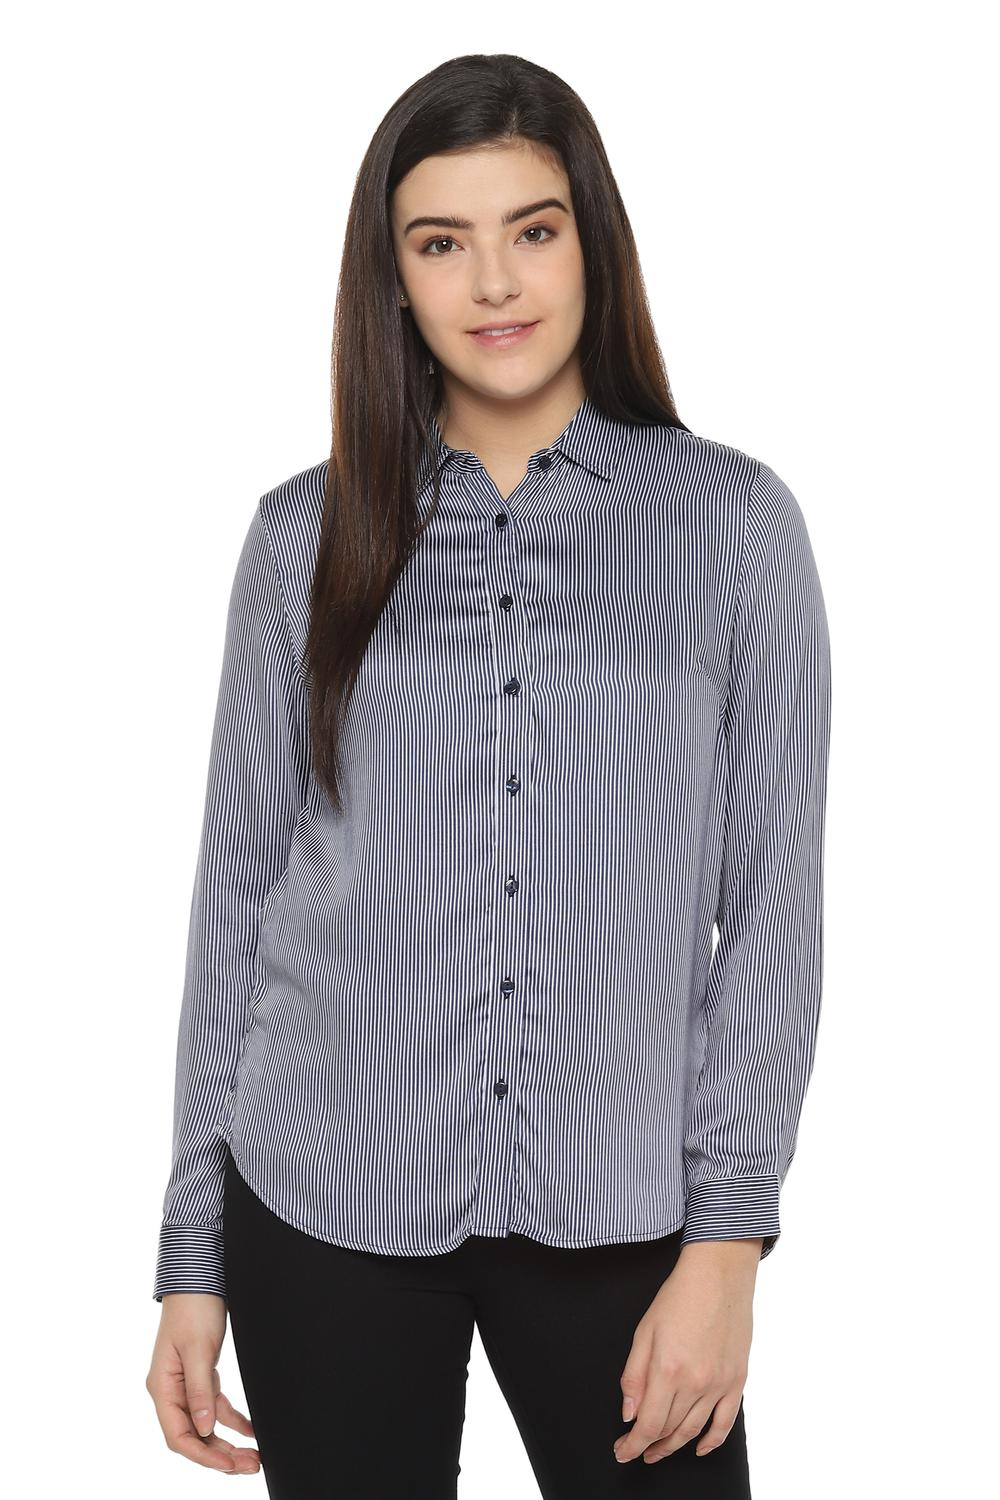 Ladies CREAM long Sleeve fitted Blouse Work//office//social//leisure Choose Size